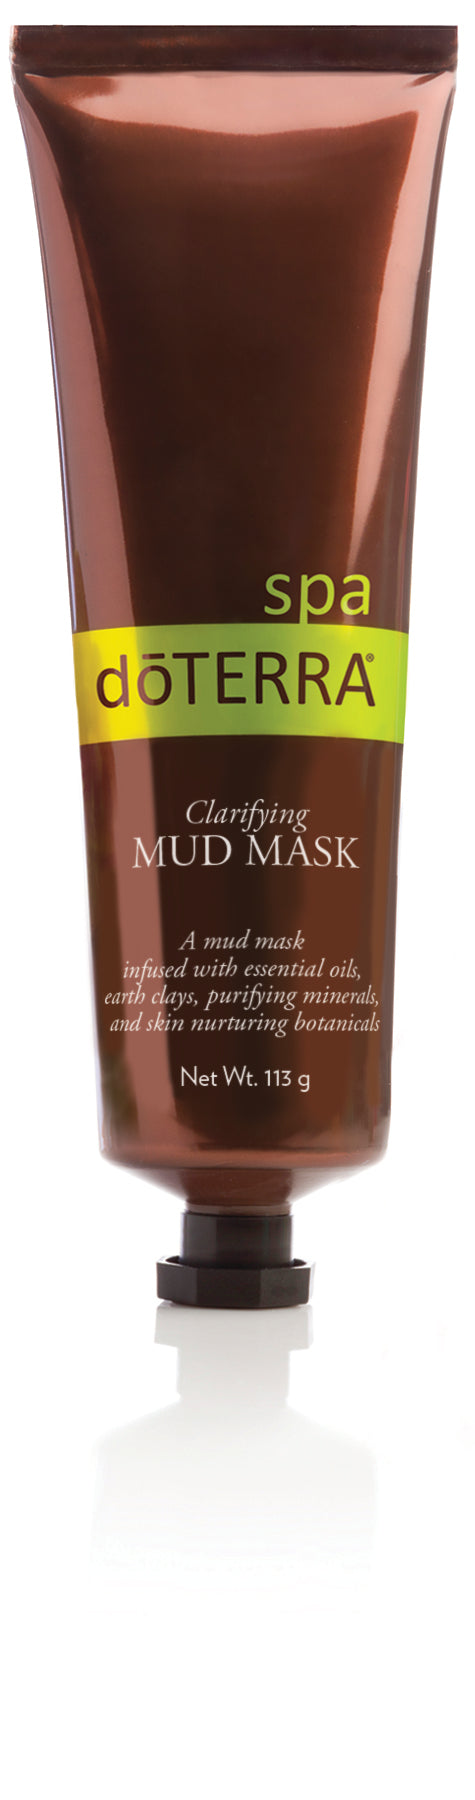 dōTERRA Spa Detoxifying Mud Mask